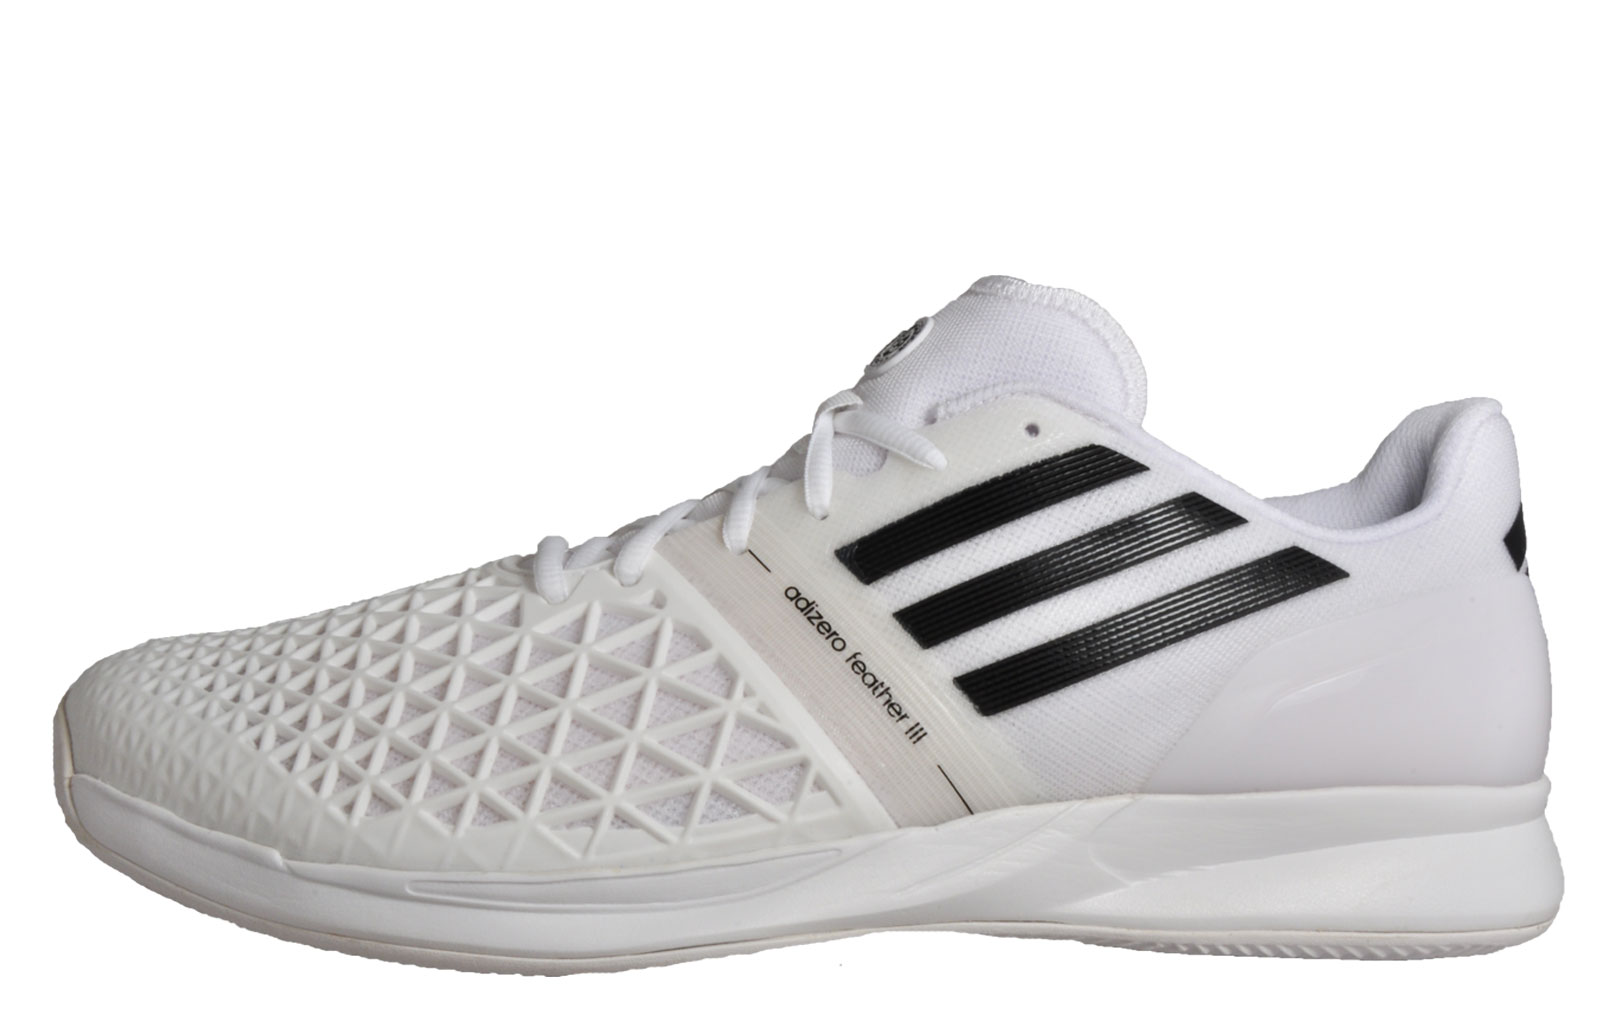 info for b7727 17fb7 Adidas CC Adizero Feather III RG Mens Tennis Shoes Court Fitness Trainers  White